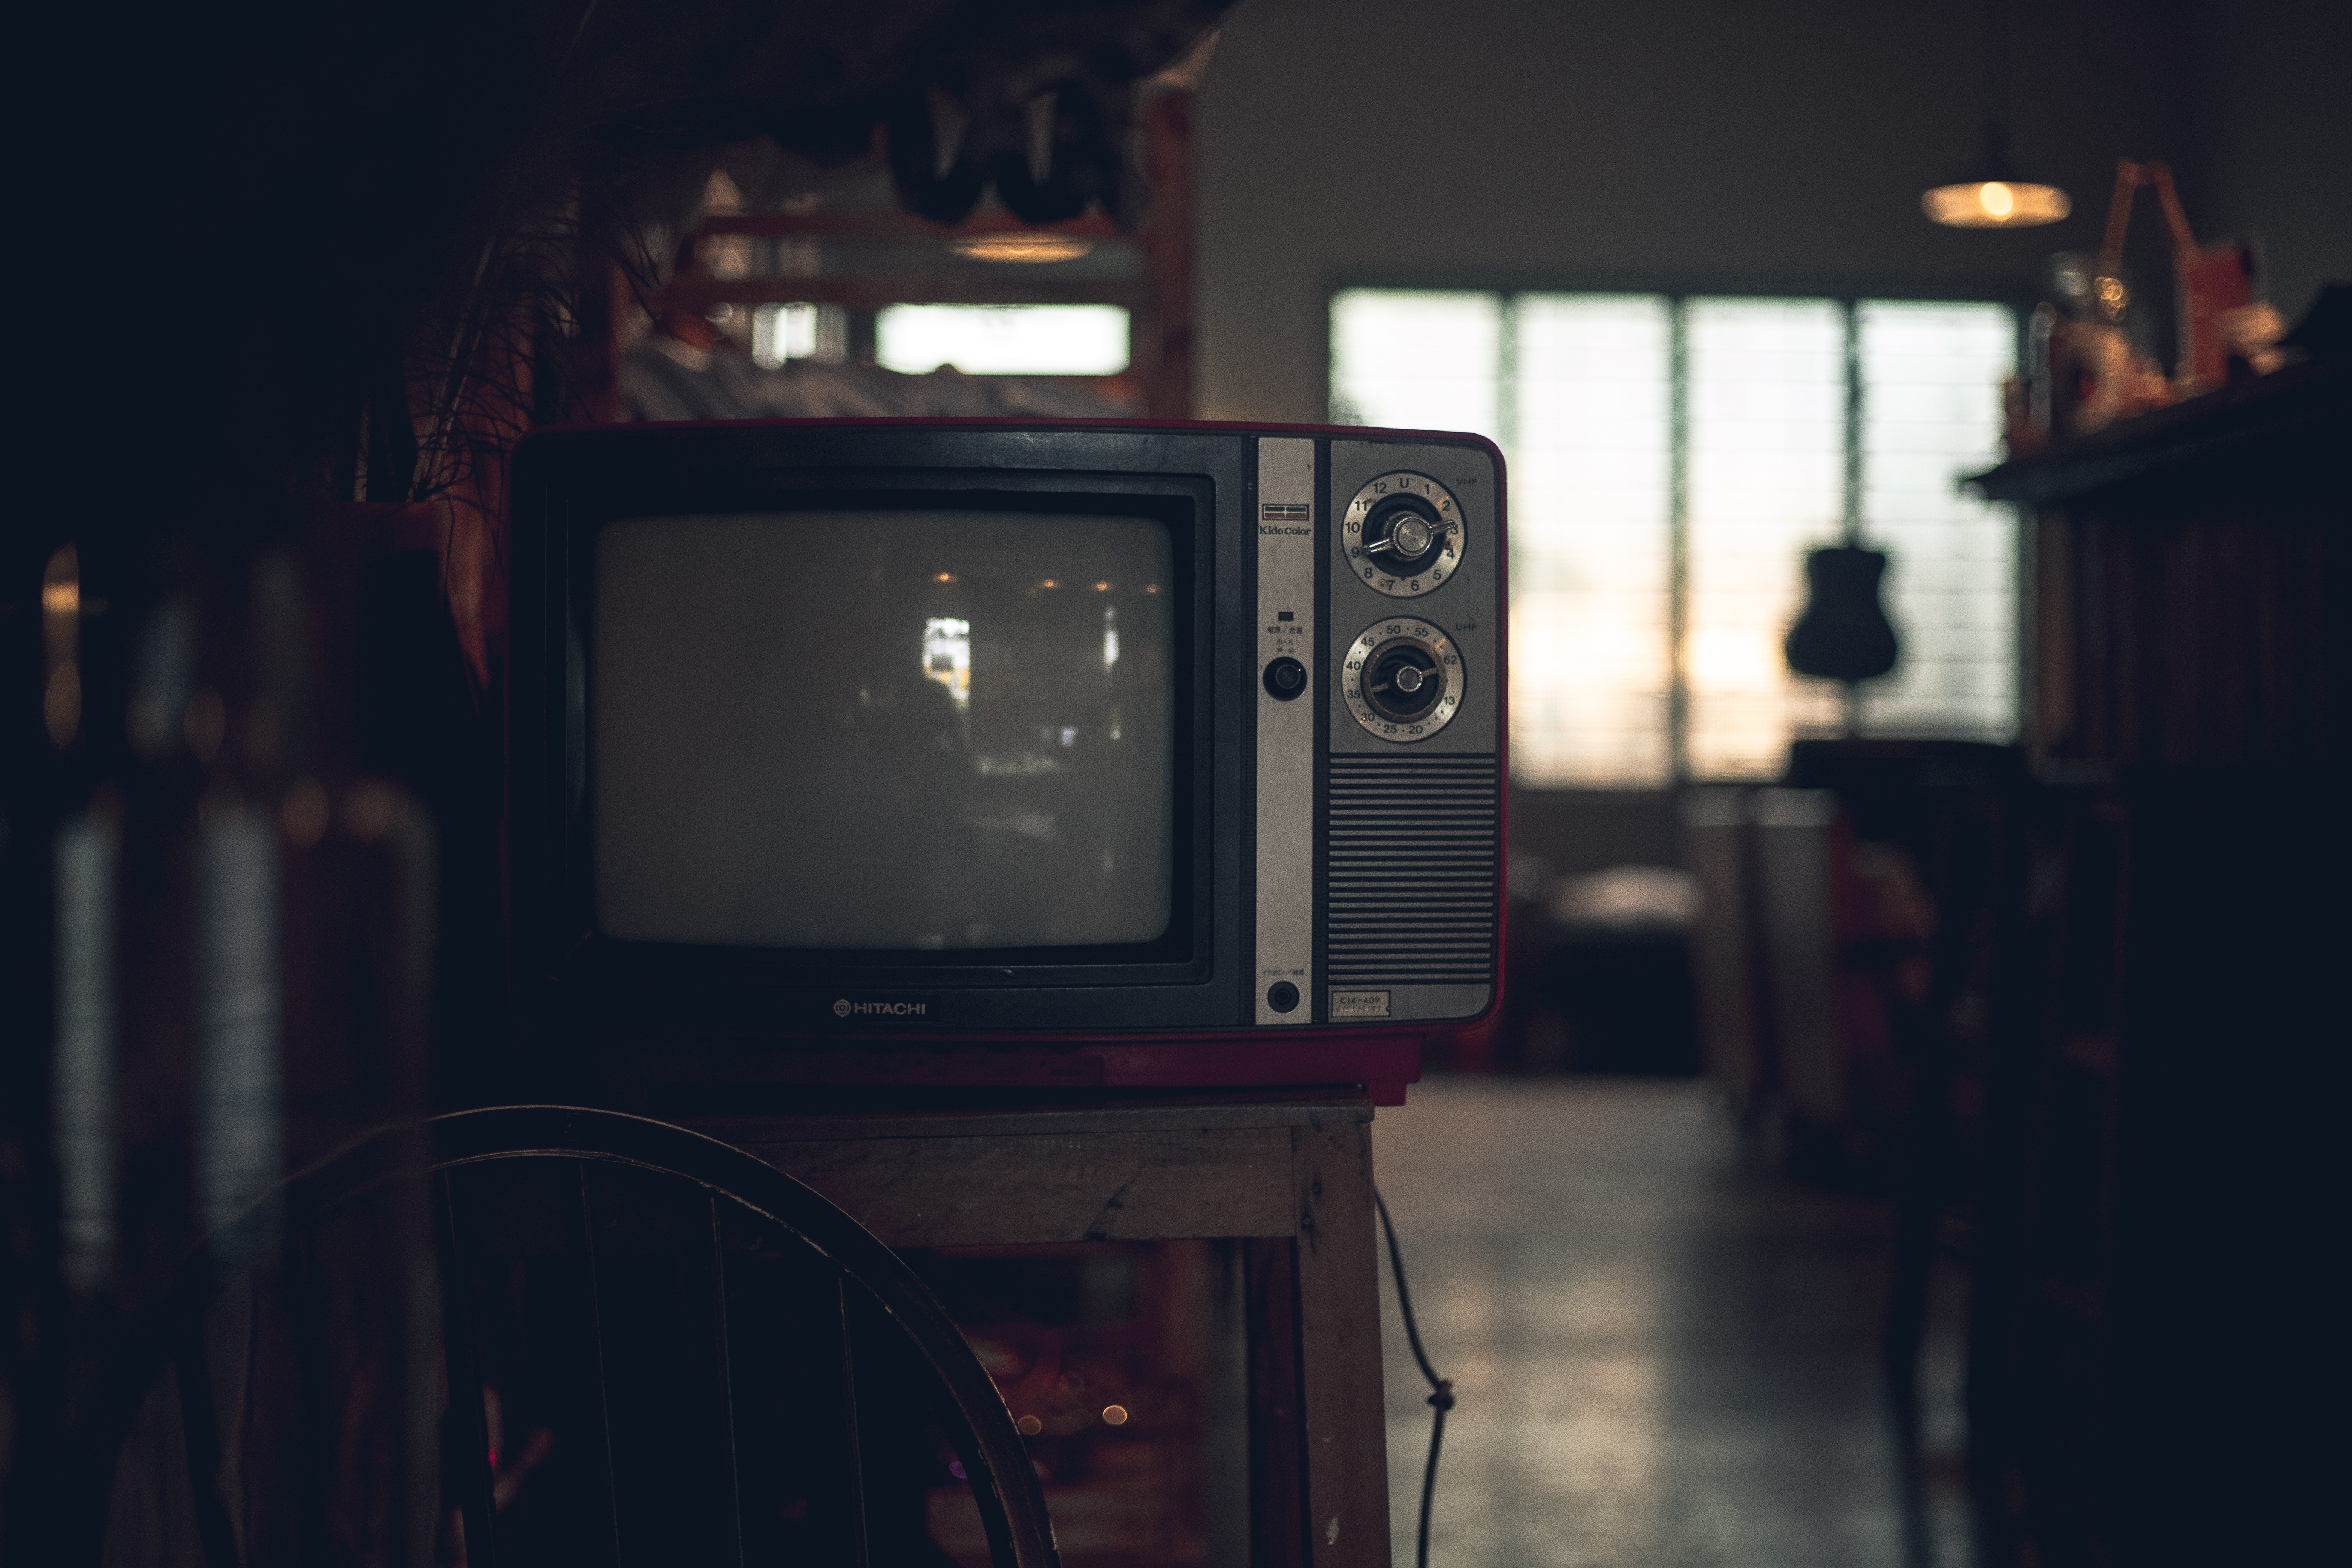 Createquity Podcast Series 3: Is Television Bad For Us?